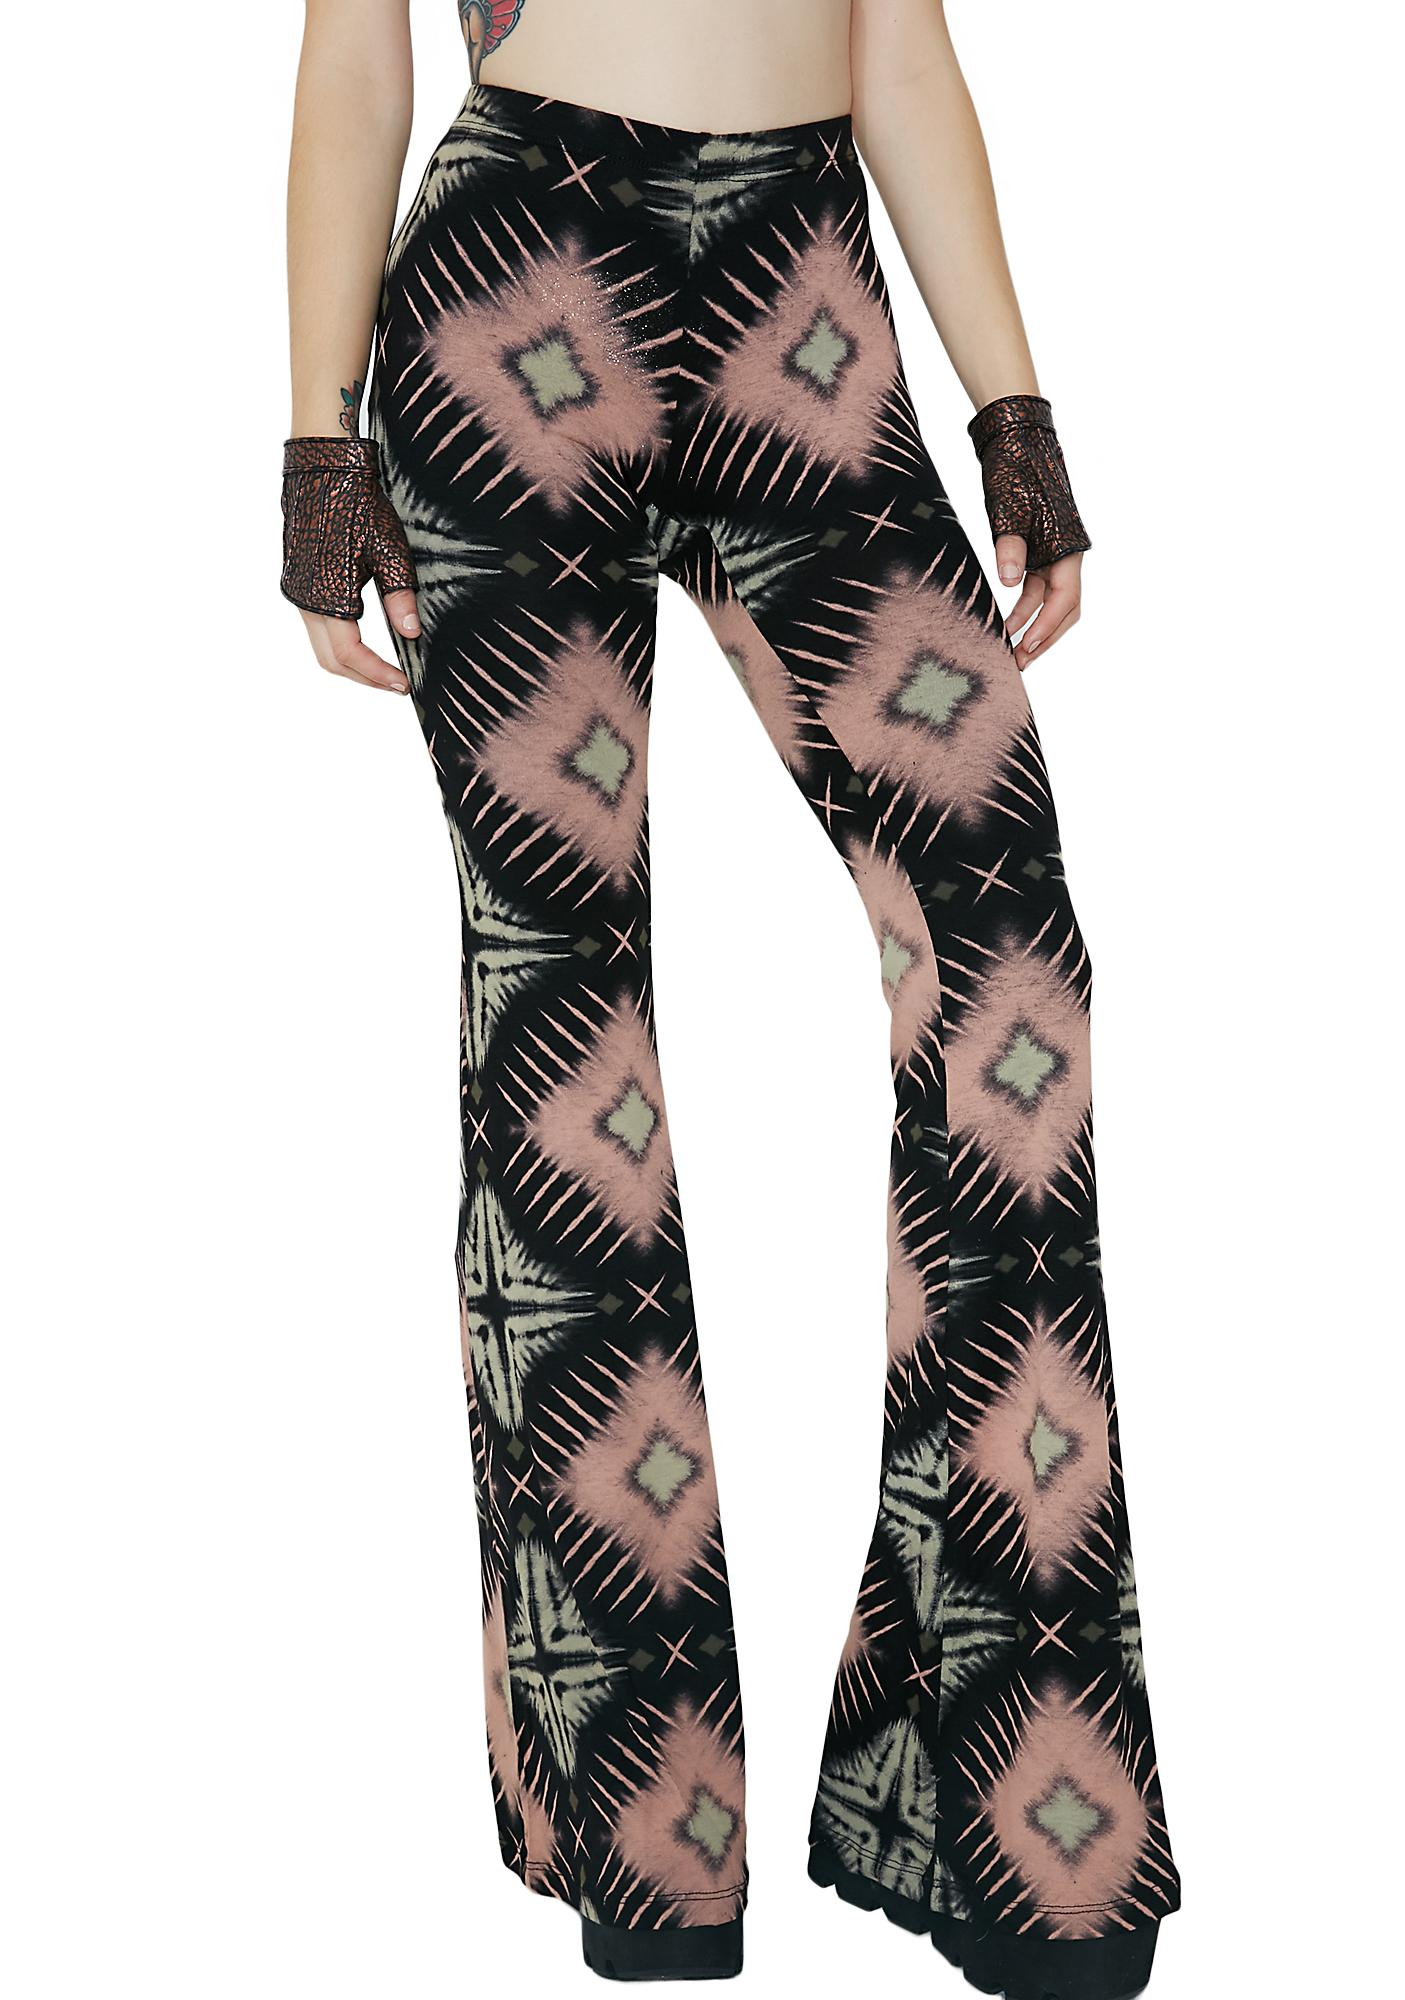 Lira Clothing Onyx Sasha Bell Pants